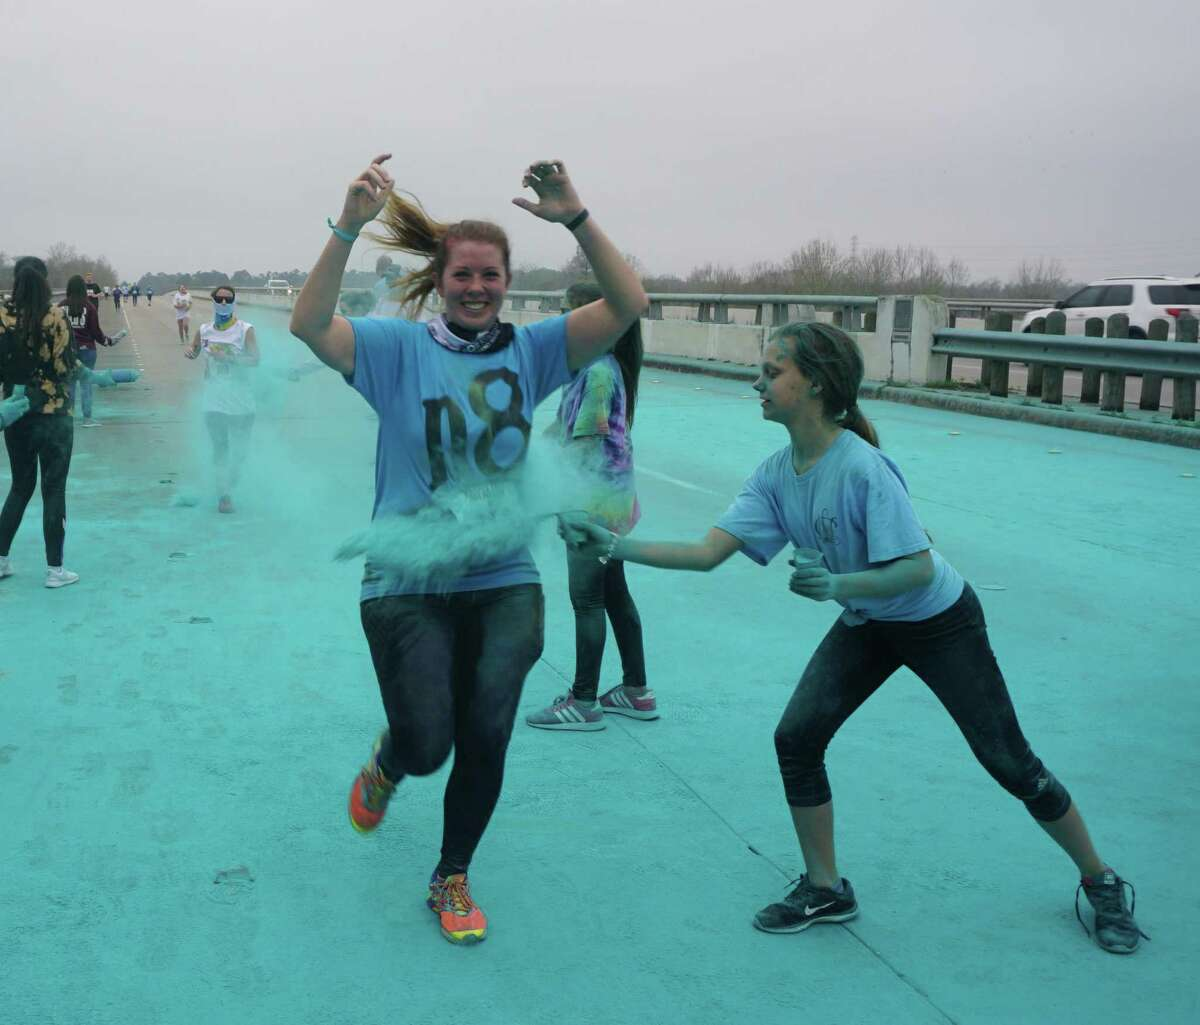 Catherine Olano of Humble and one of her daughters, Victoria, shower a runner with teal at the 28th Bridge Fest on Feb. 16, 2019 in Kingwood, TX. They are volunteers at the event along with members of the National Charity League's Lake Houston chapter, a philanthropic mother-daughter group.